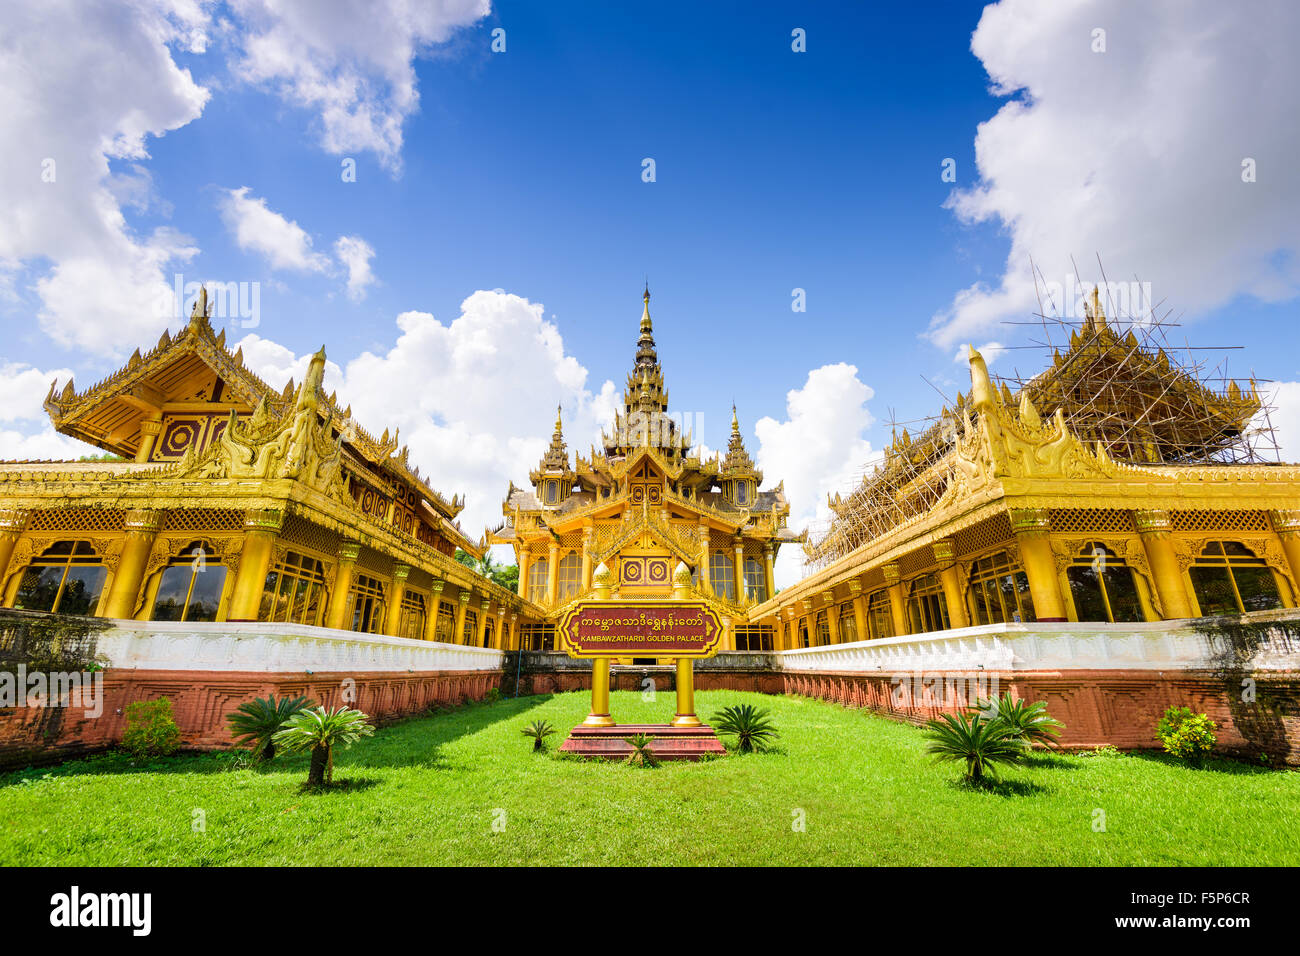 Bago, Myanmar at Kambawzathardi Golden Palace. - Stock Image